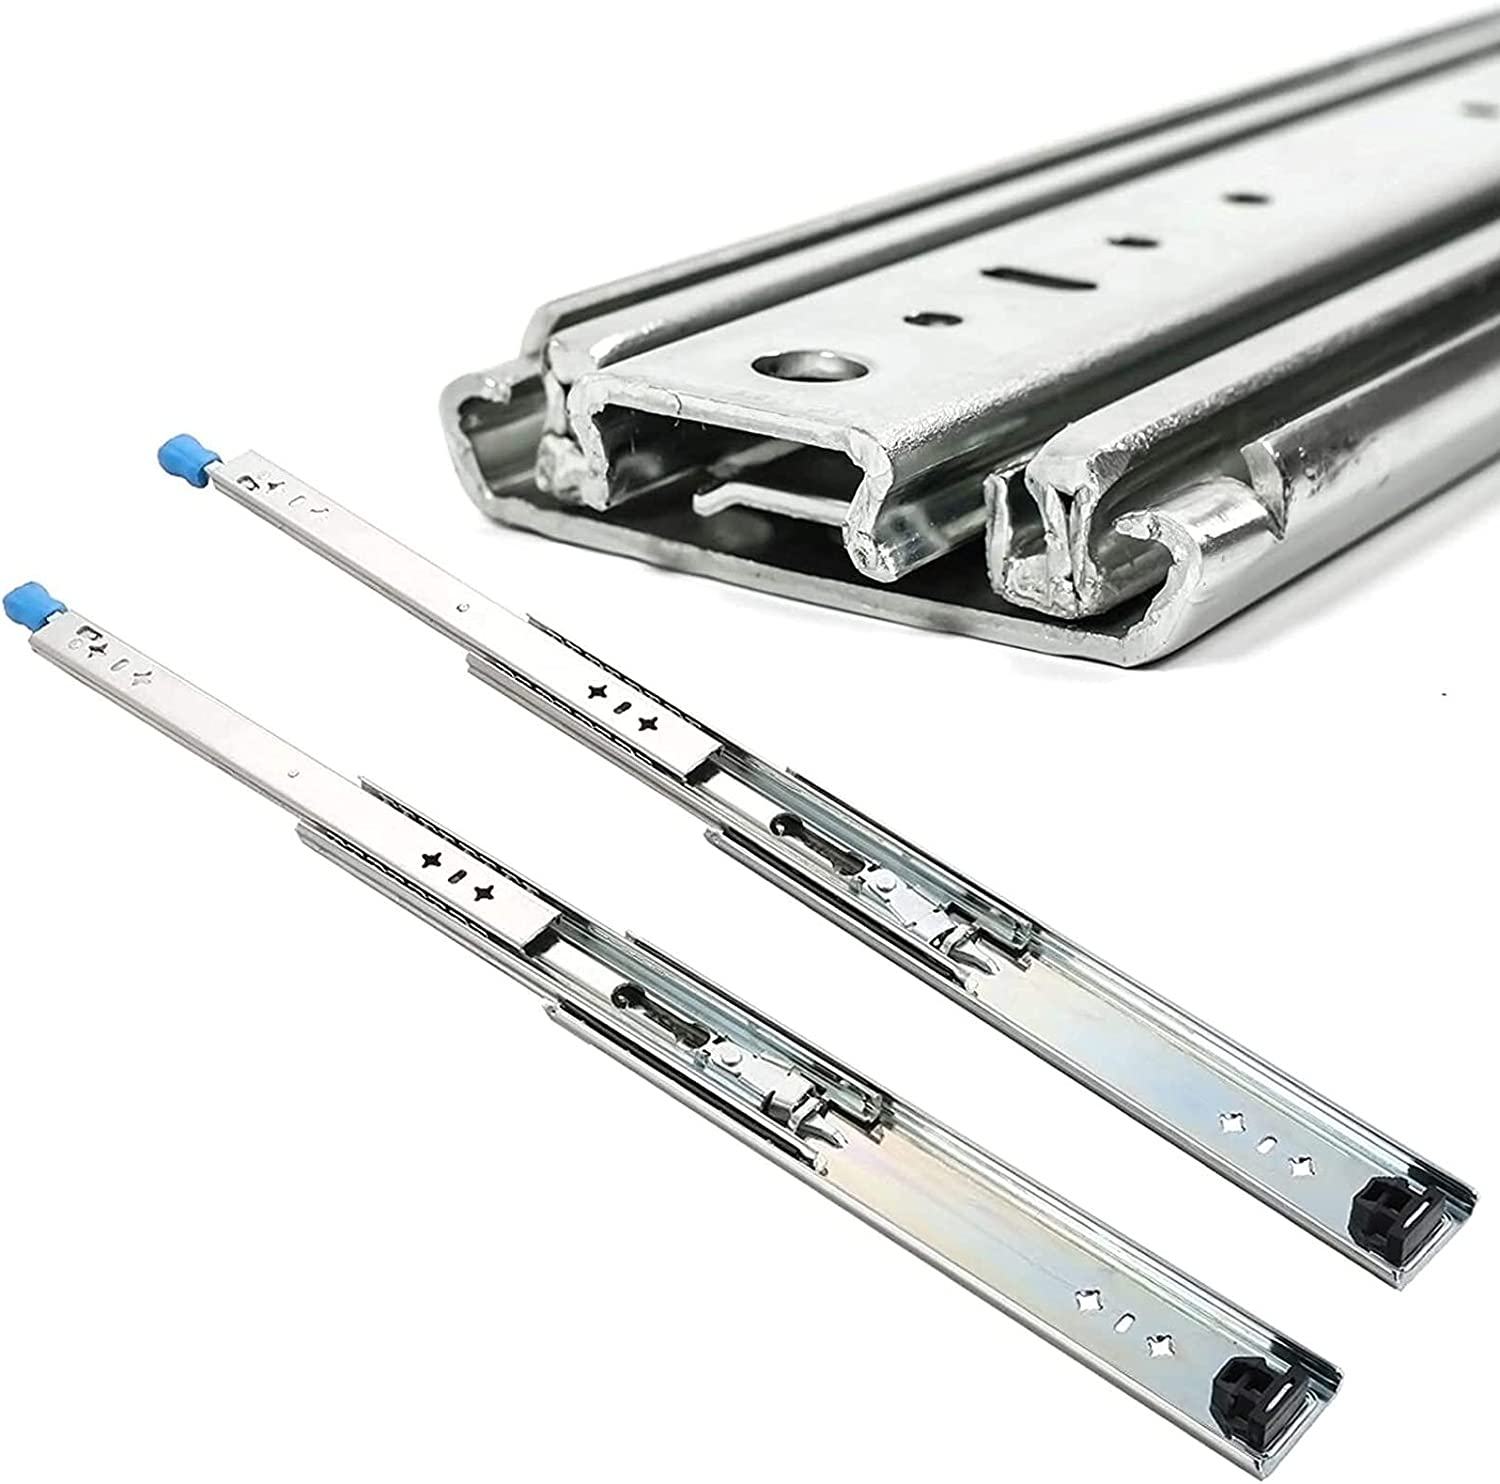 Shipping included YDSHOLL 53mm Wide Ball Bearing Drawer - Slides Heavy 265lb Duty Limited price